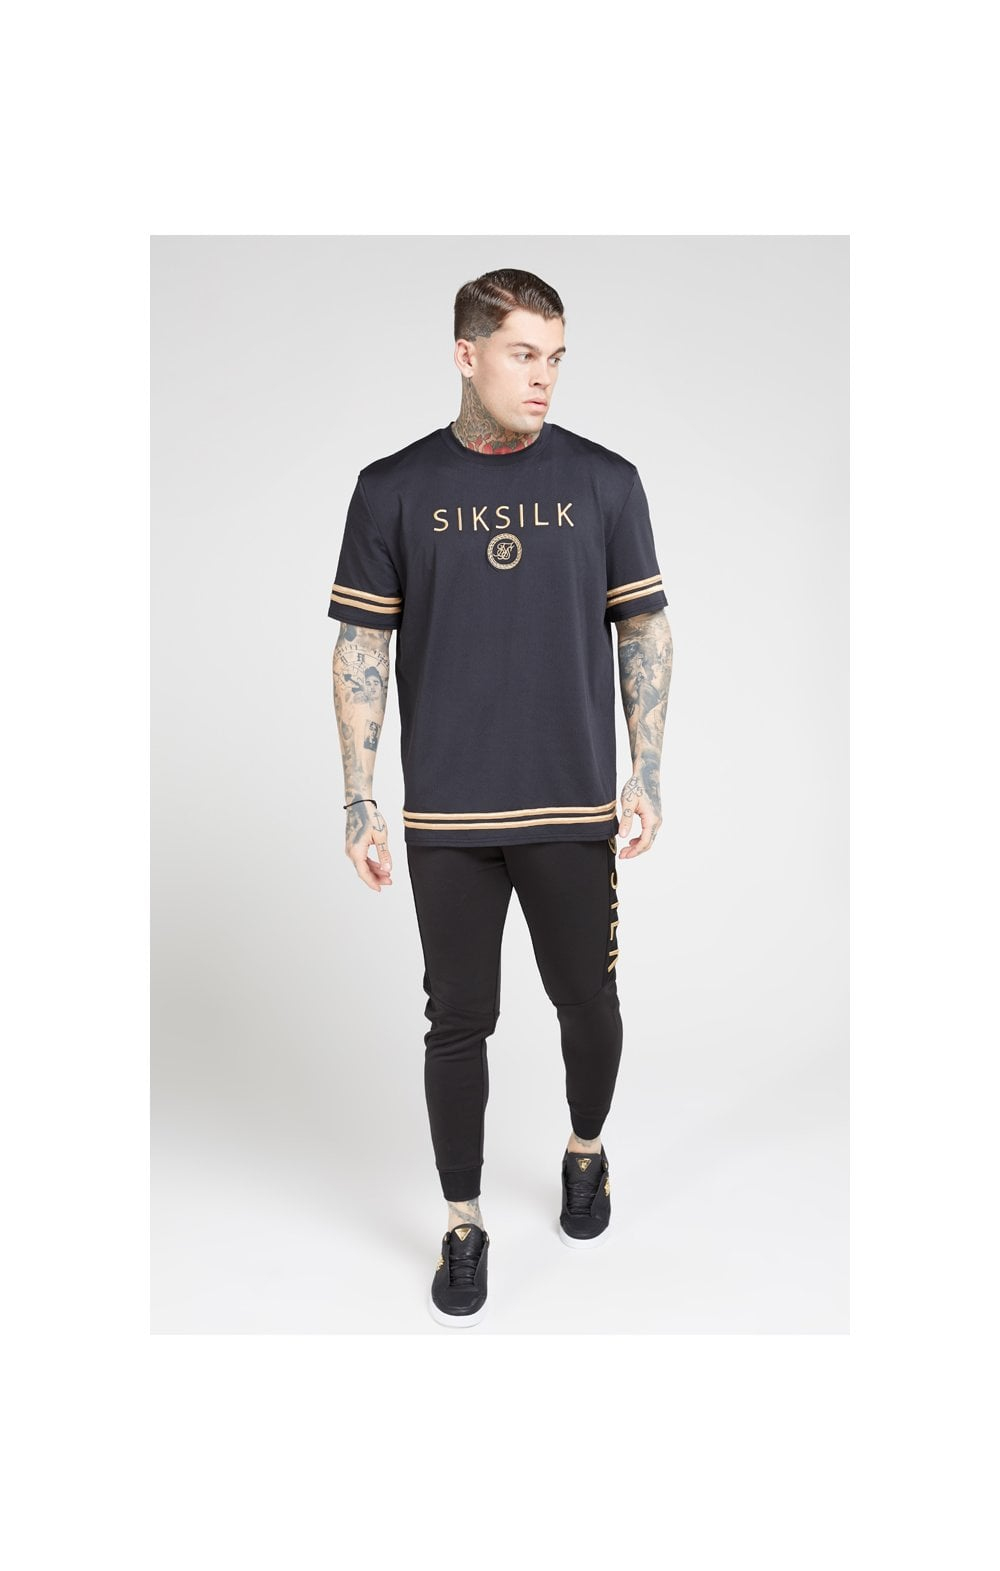 Load image into Gallery viewer, SikSilk S/S Oversize Essentials Tee – Black & Gold (2)